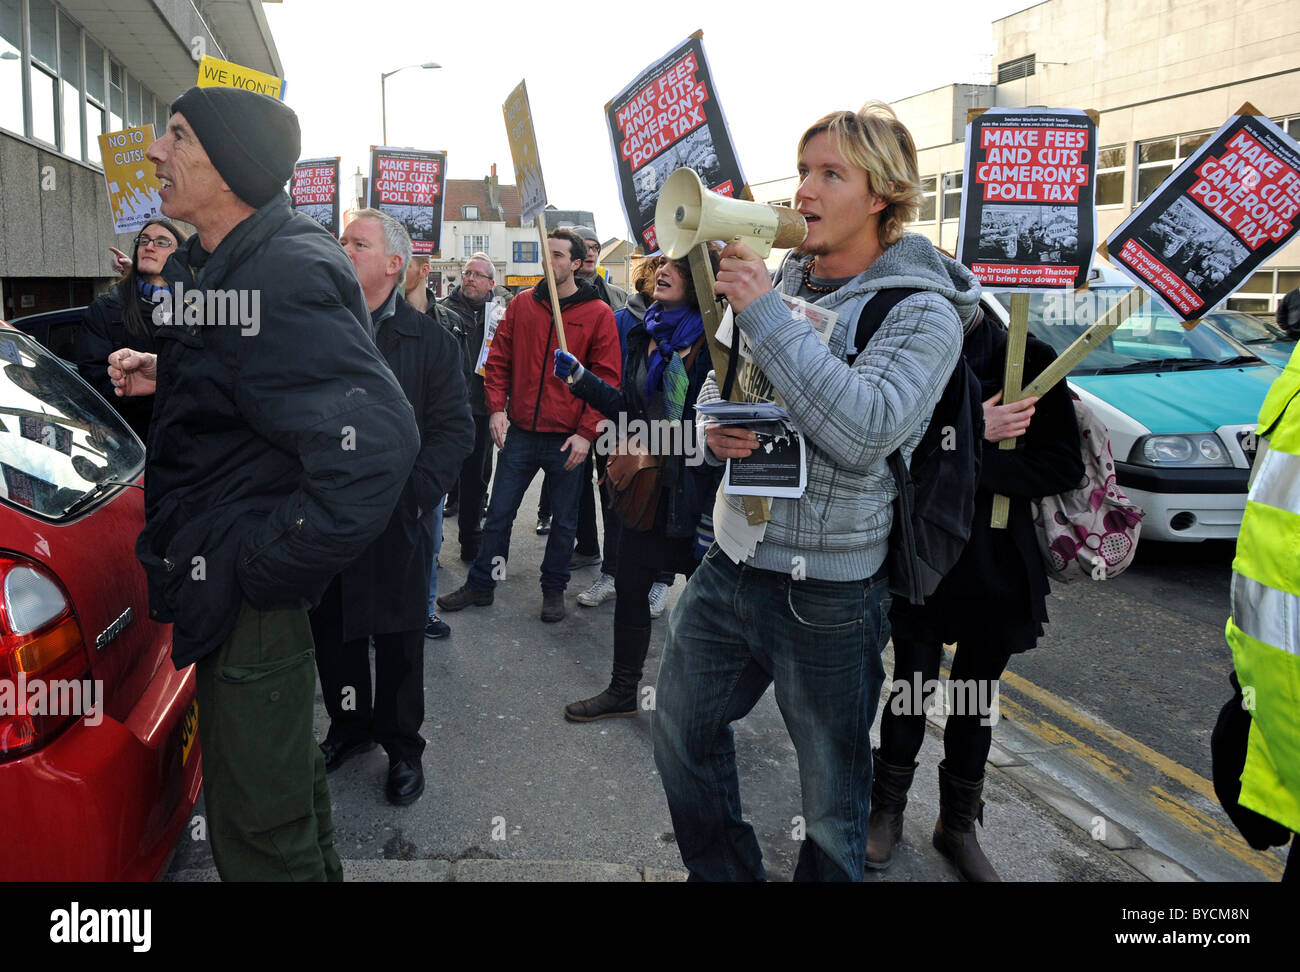 A small group of protestors shout at Employment Minister Chris Grayling during a visit to a Job Centre in Brighton - Stock Image